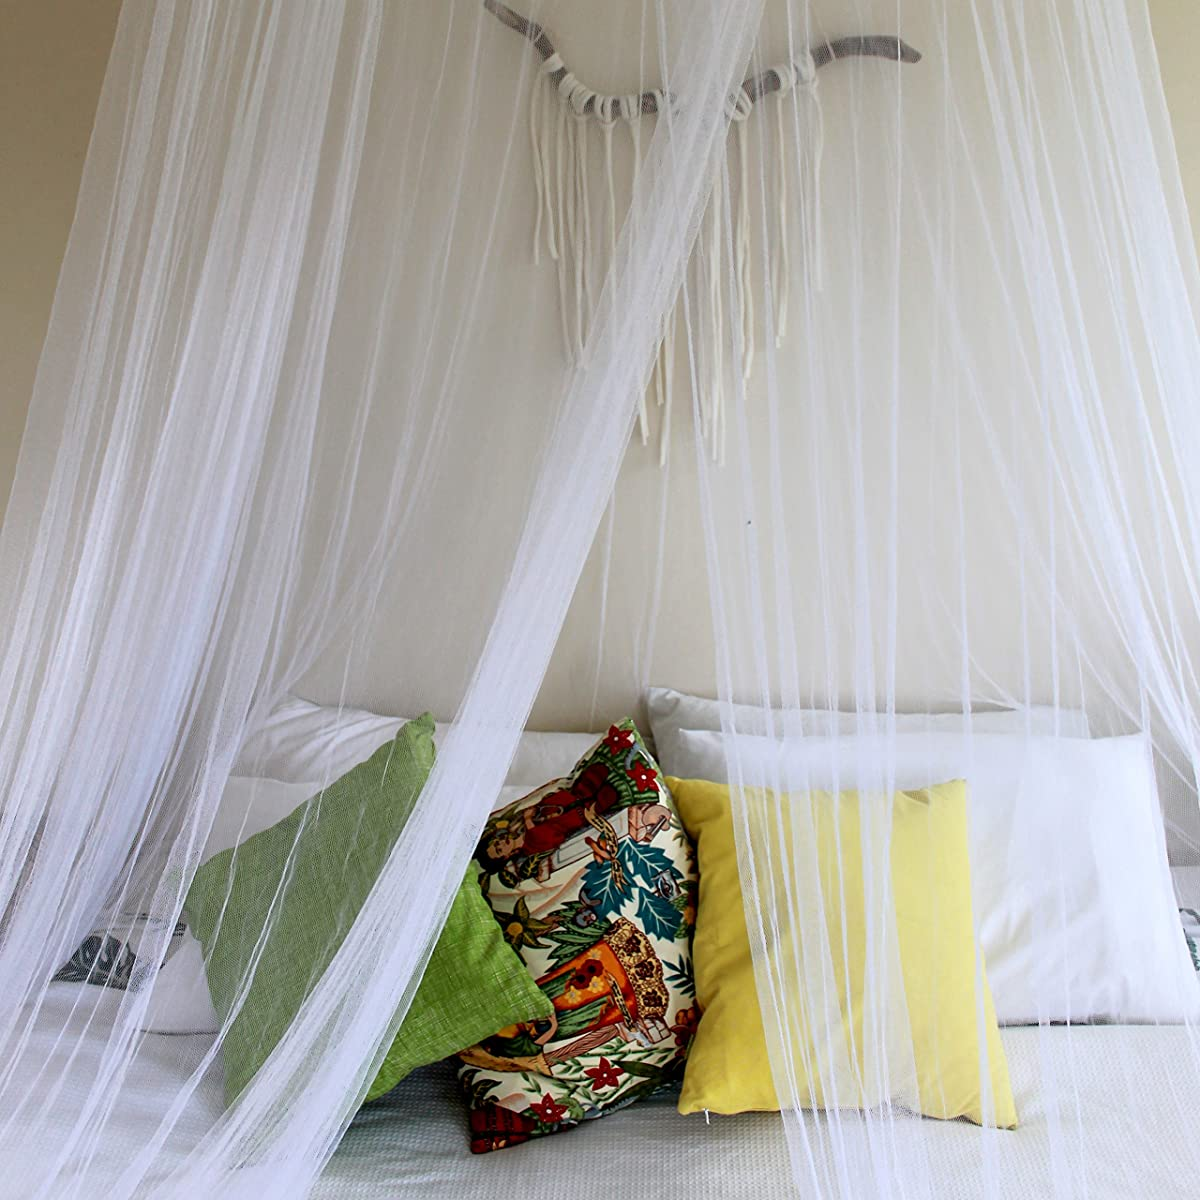 Boho & Beach Luxury Mosquito Net Bed Canopy +3 Bonus Hanging Decorative Gifts, Glamorous & Classy Design with Eco-Friendly Bamboo Expandable Top - Queen, Full or Twin Bed, Indoor/Outdoor Use